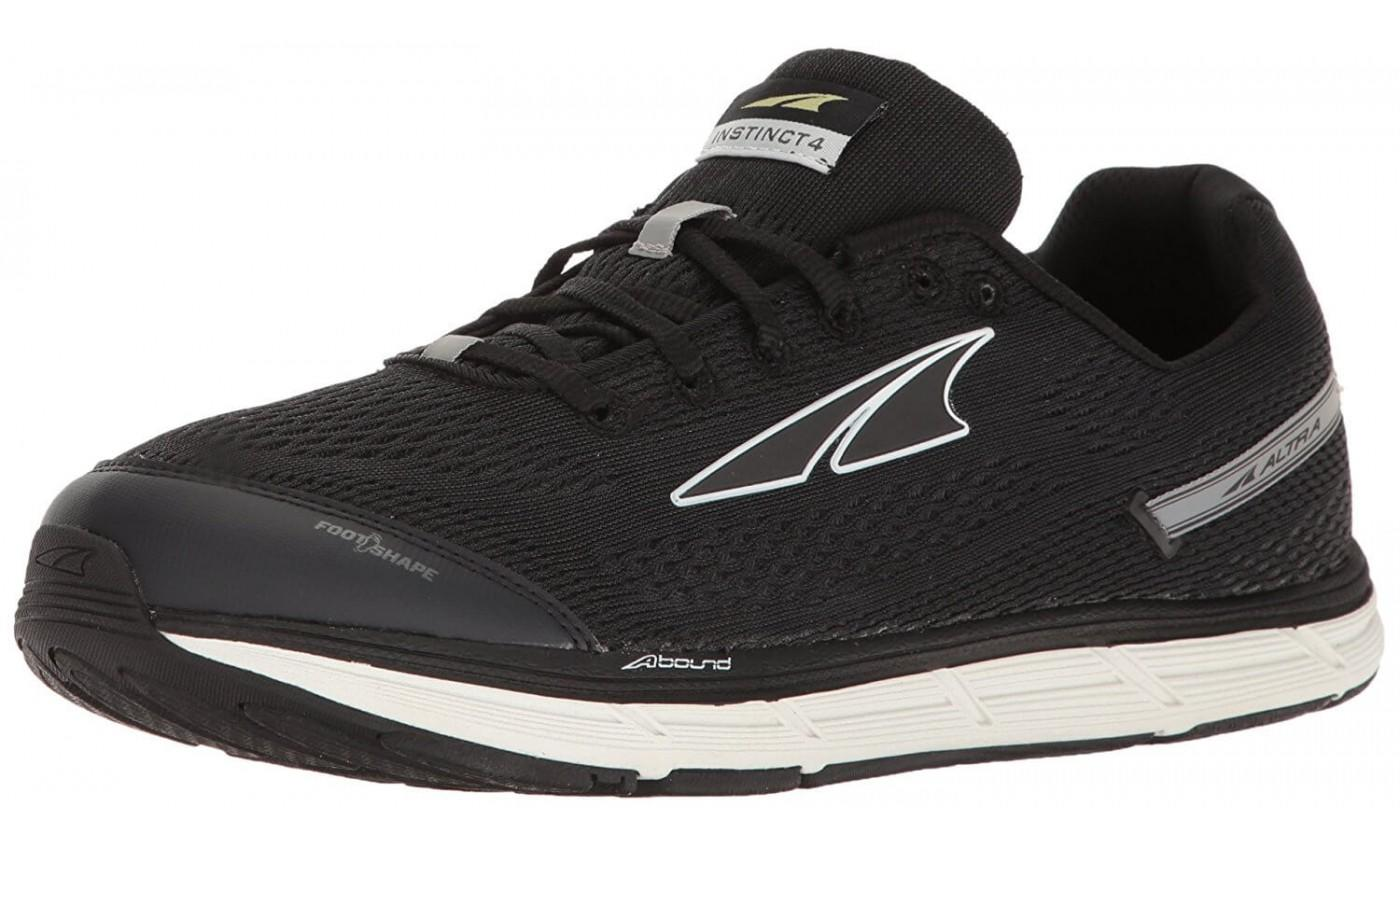 The Altra Instinct 4 is the latest in the Instinct line